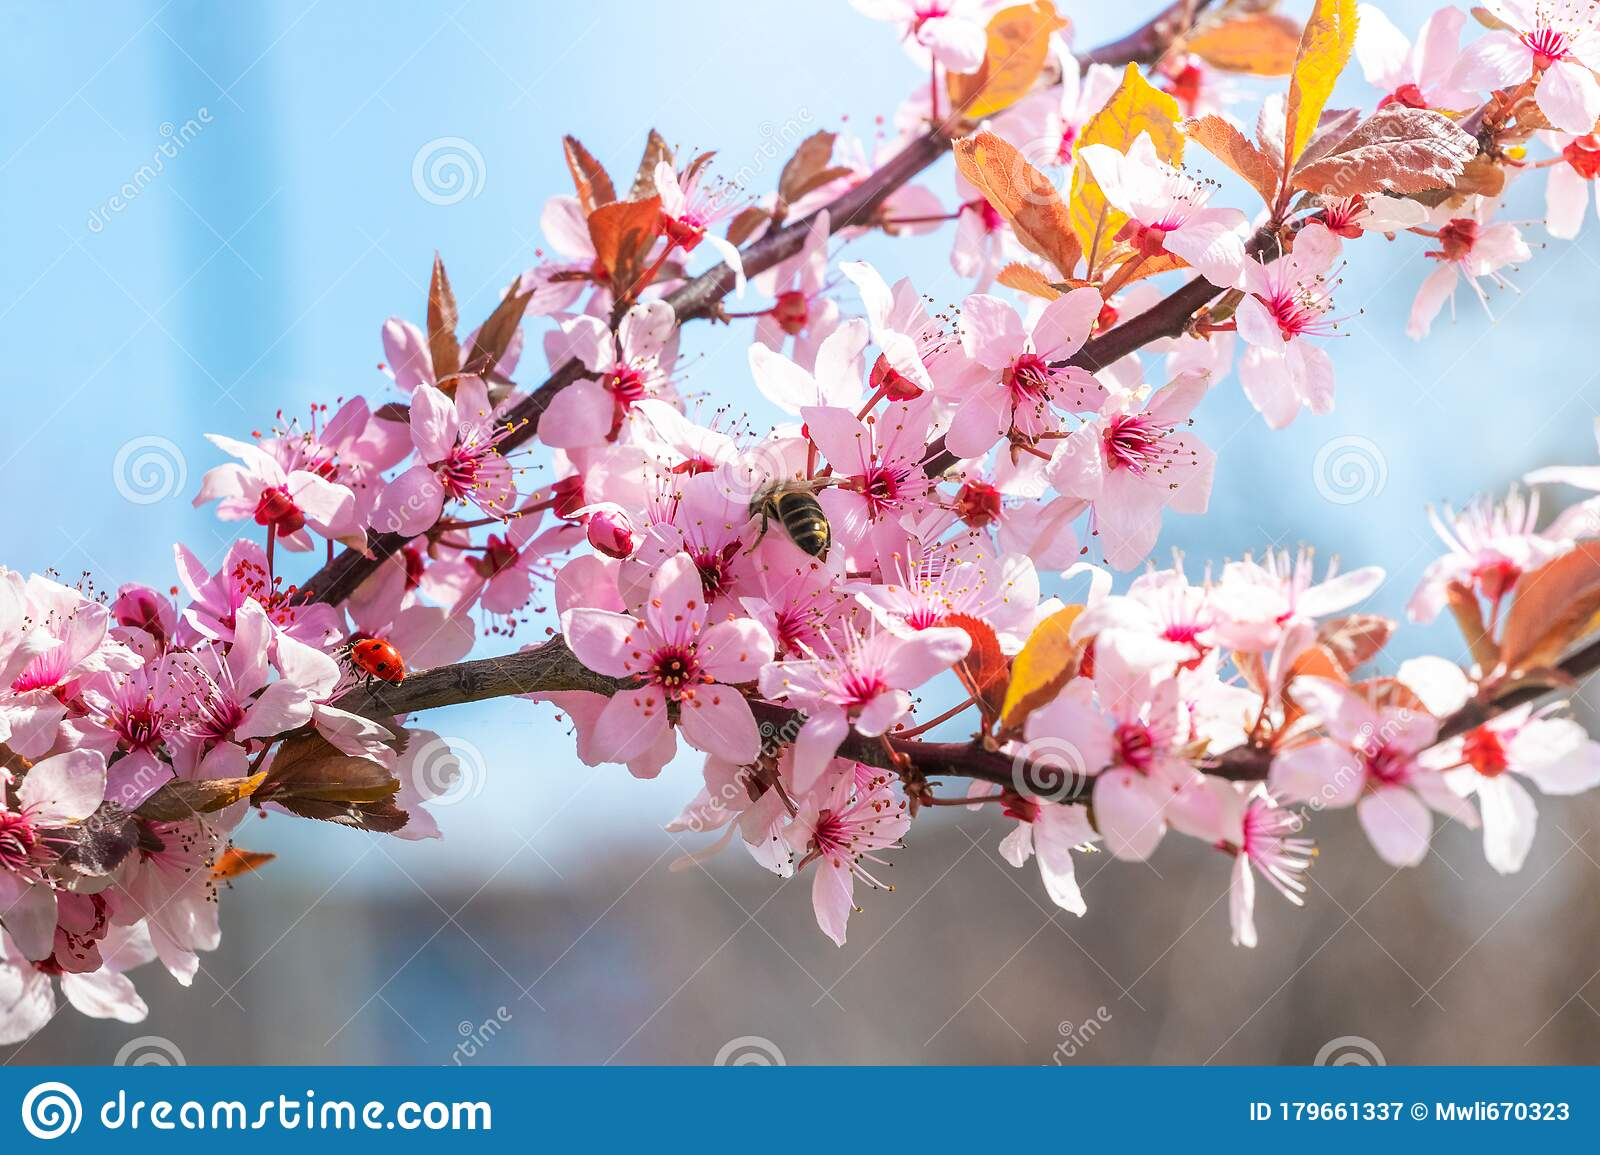 Cherry Blossom Branch Of Japanese Cherry With Pink Flowers In Sunny Day On Blue Sky Background Stock Image Image Of Plant Branch 179661337